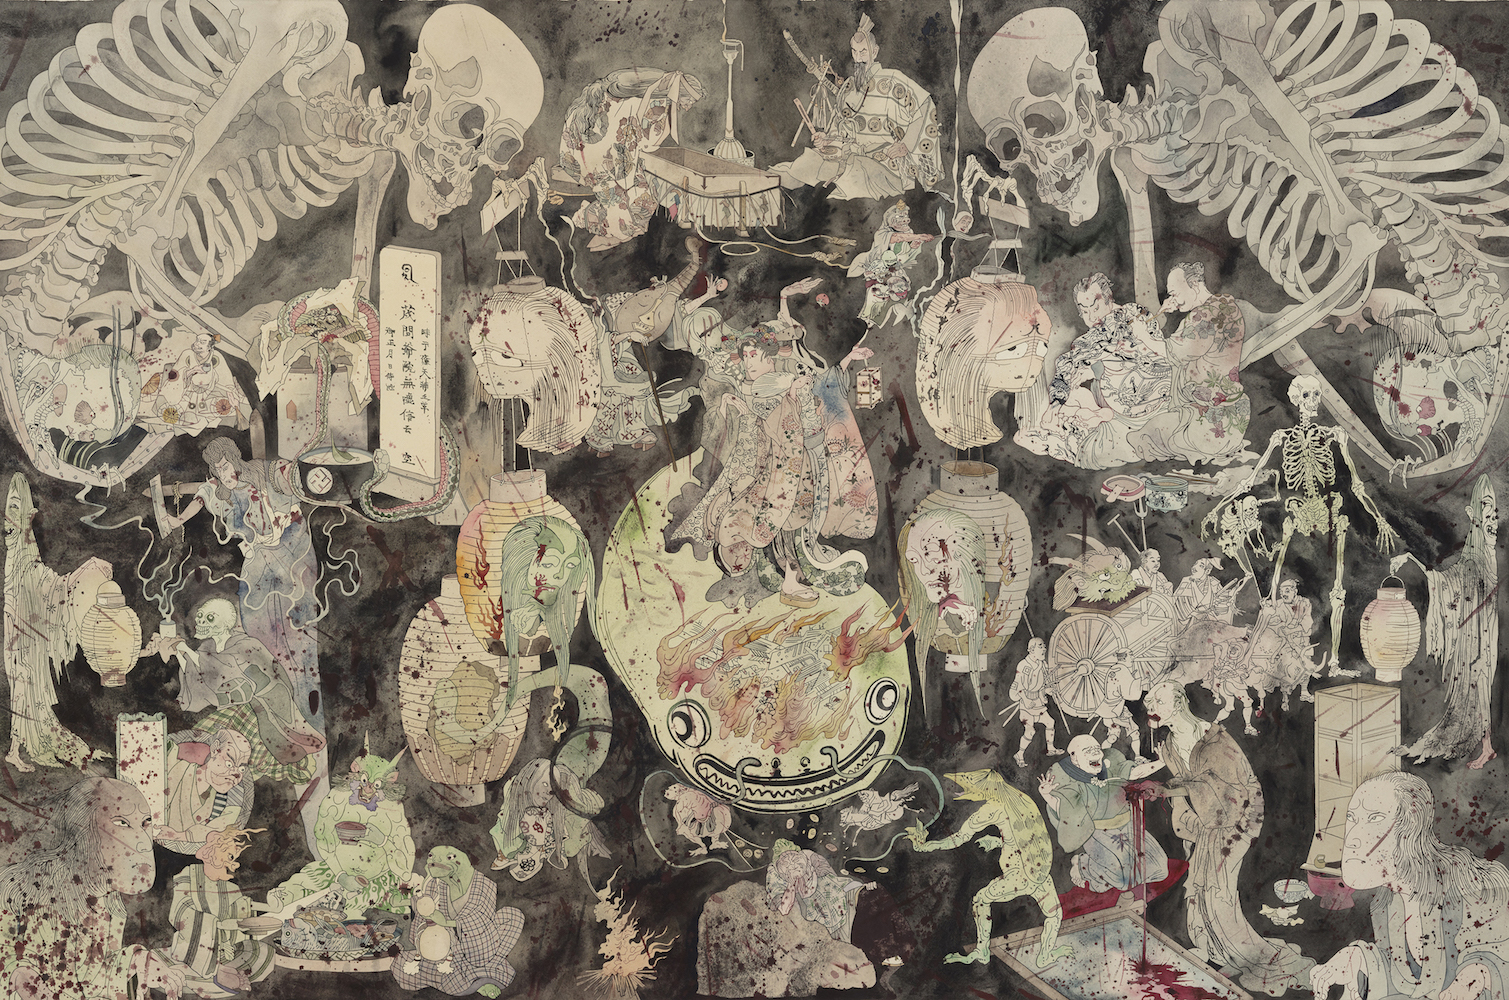 Fredrik Söderberg, The Triumph of Death /Dödens triumf, 2018, watercolour on paper, black lacquered frame, museum glass, 115 x 166 cm